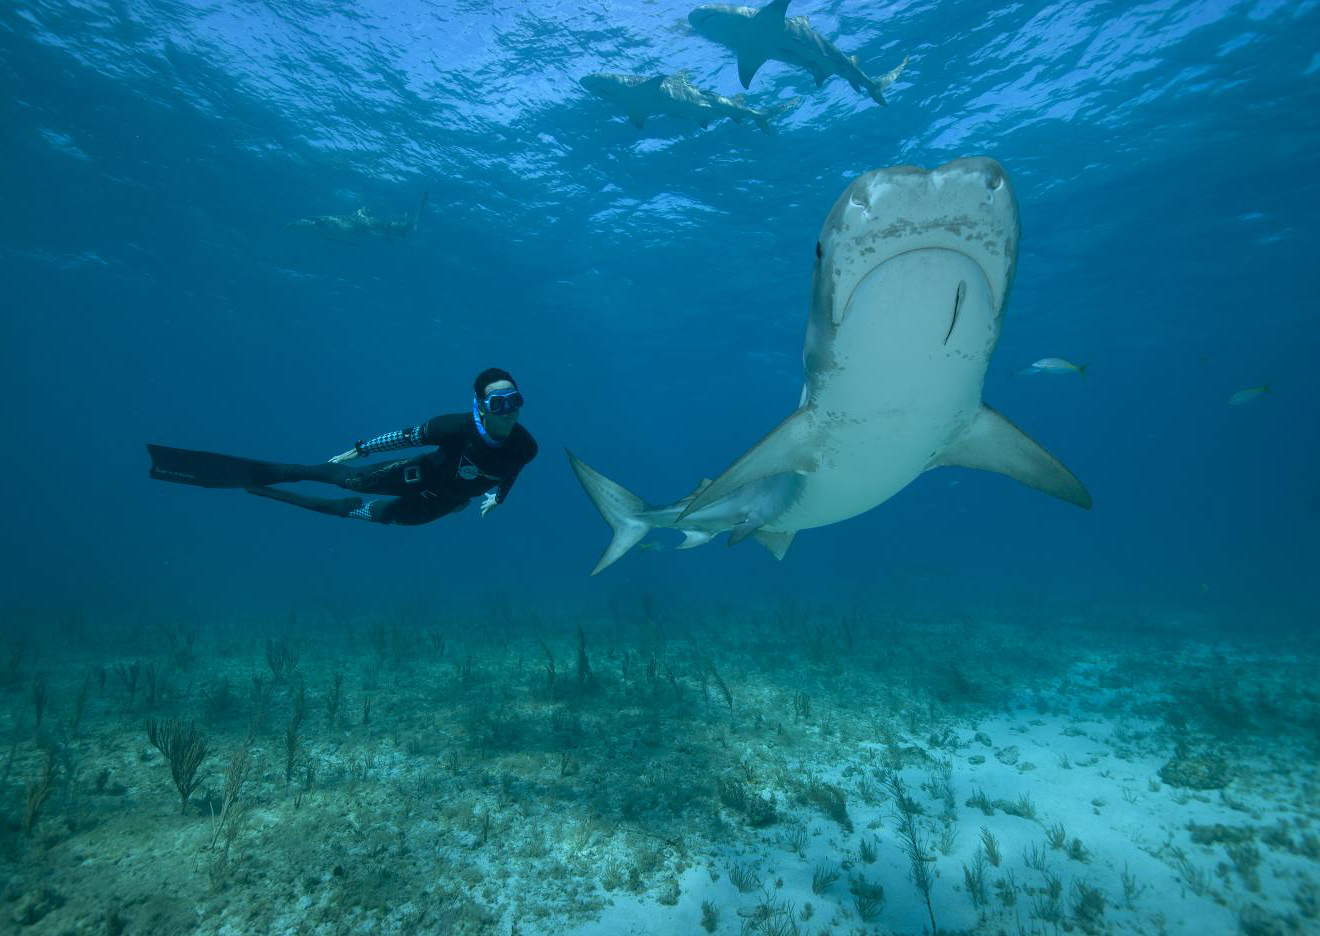 Pierre Frolla: An Invitation to Protect the World under Water